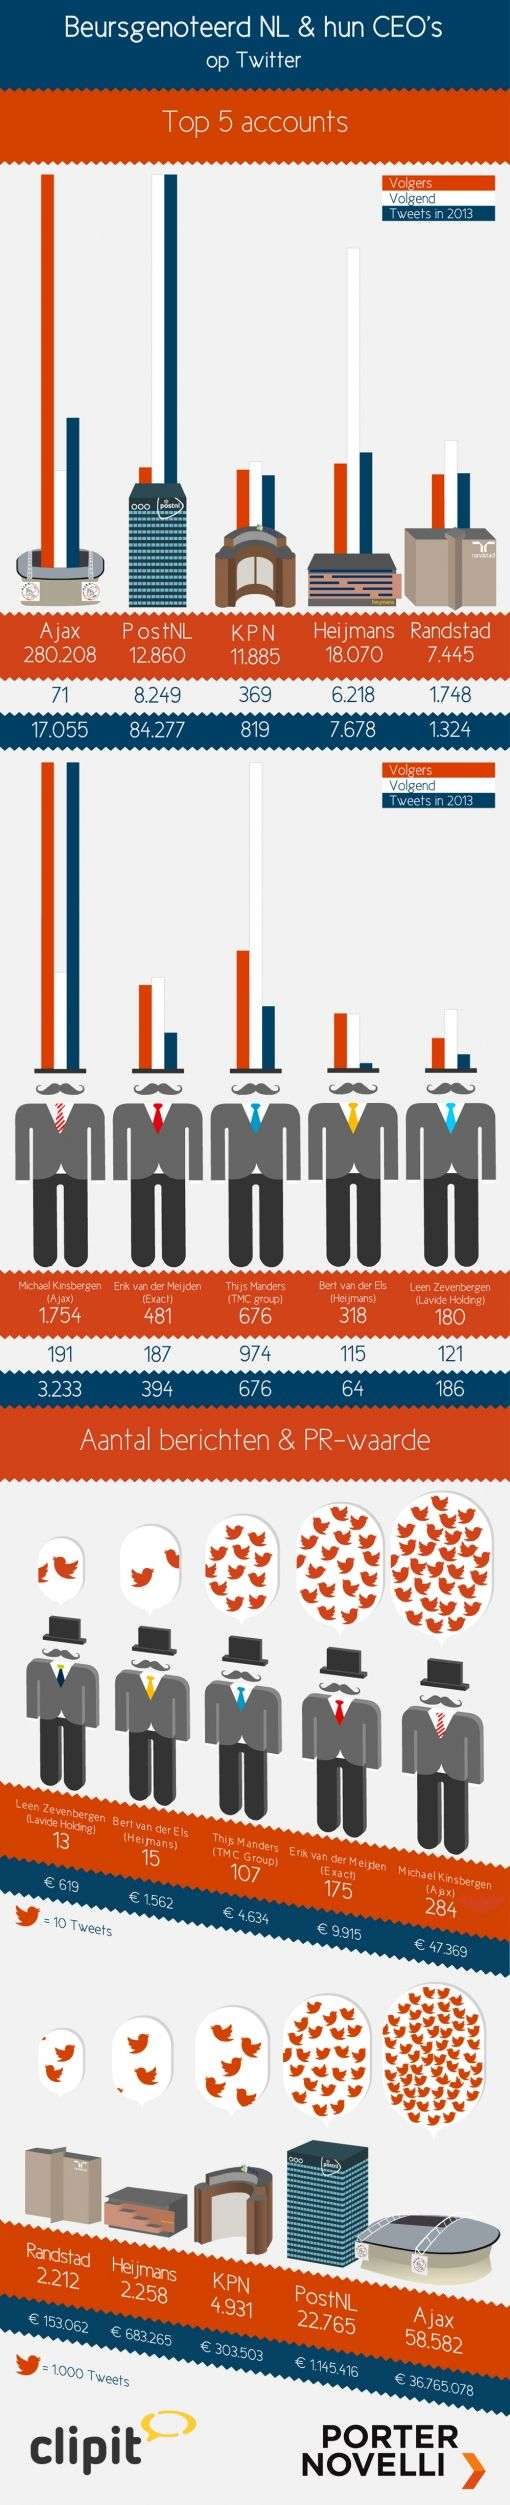 Infographic Compleet